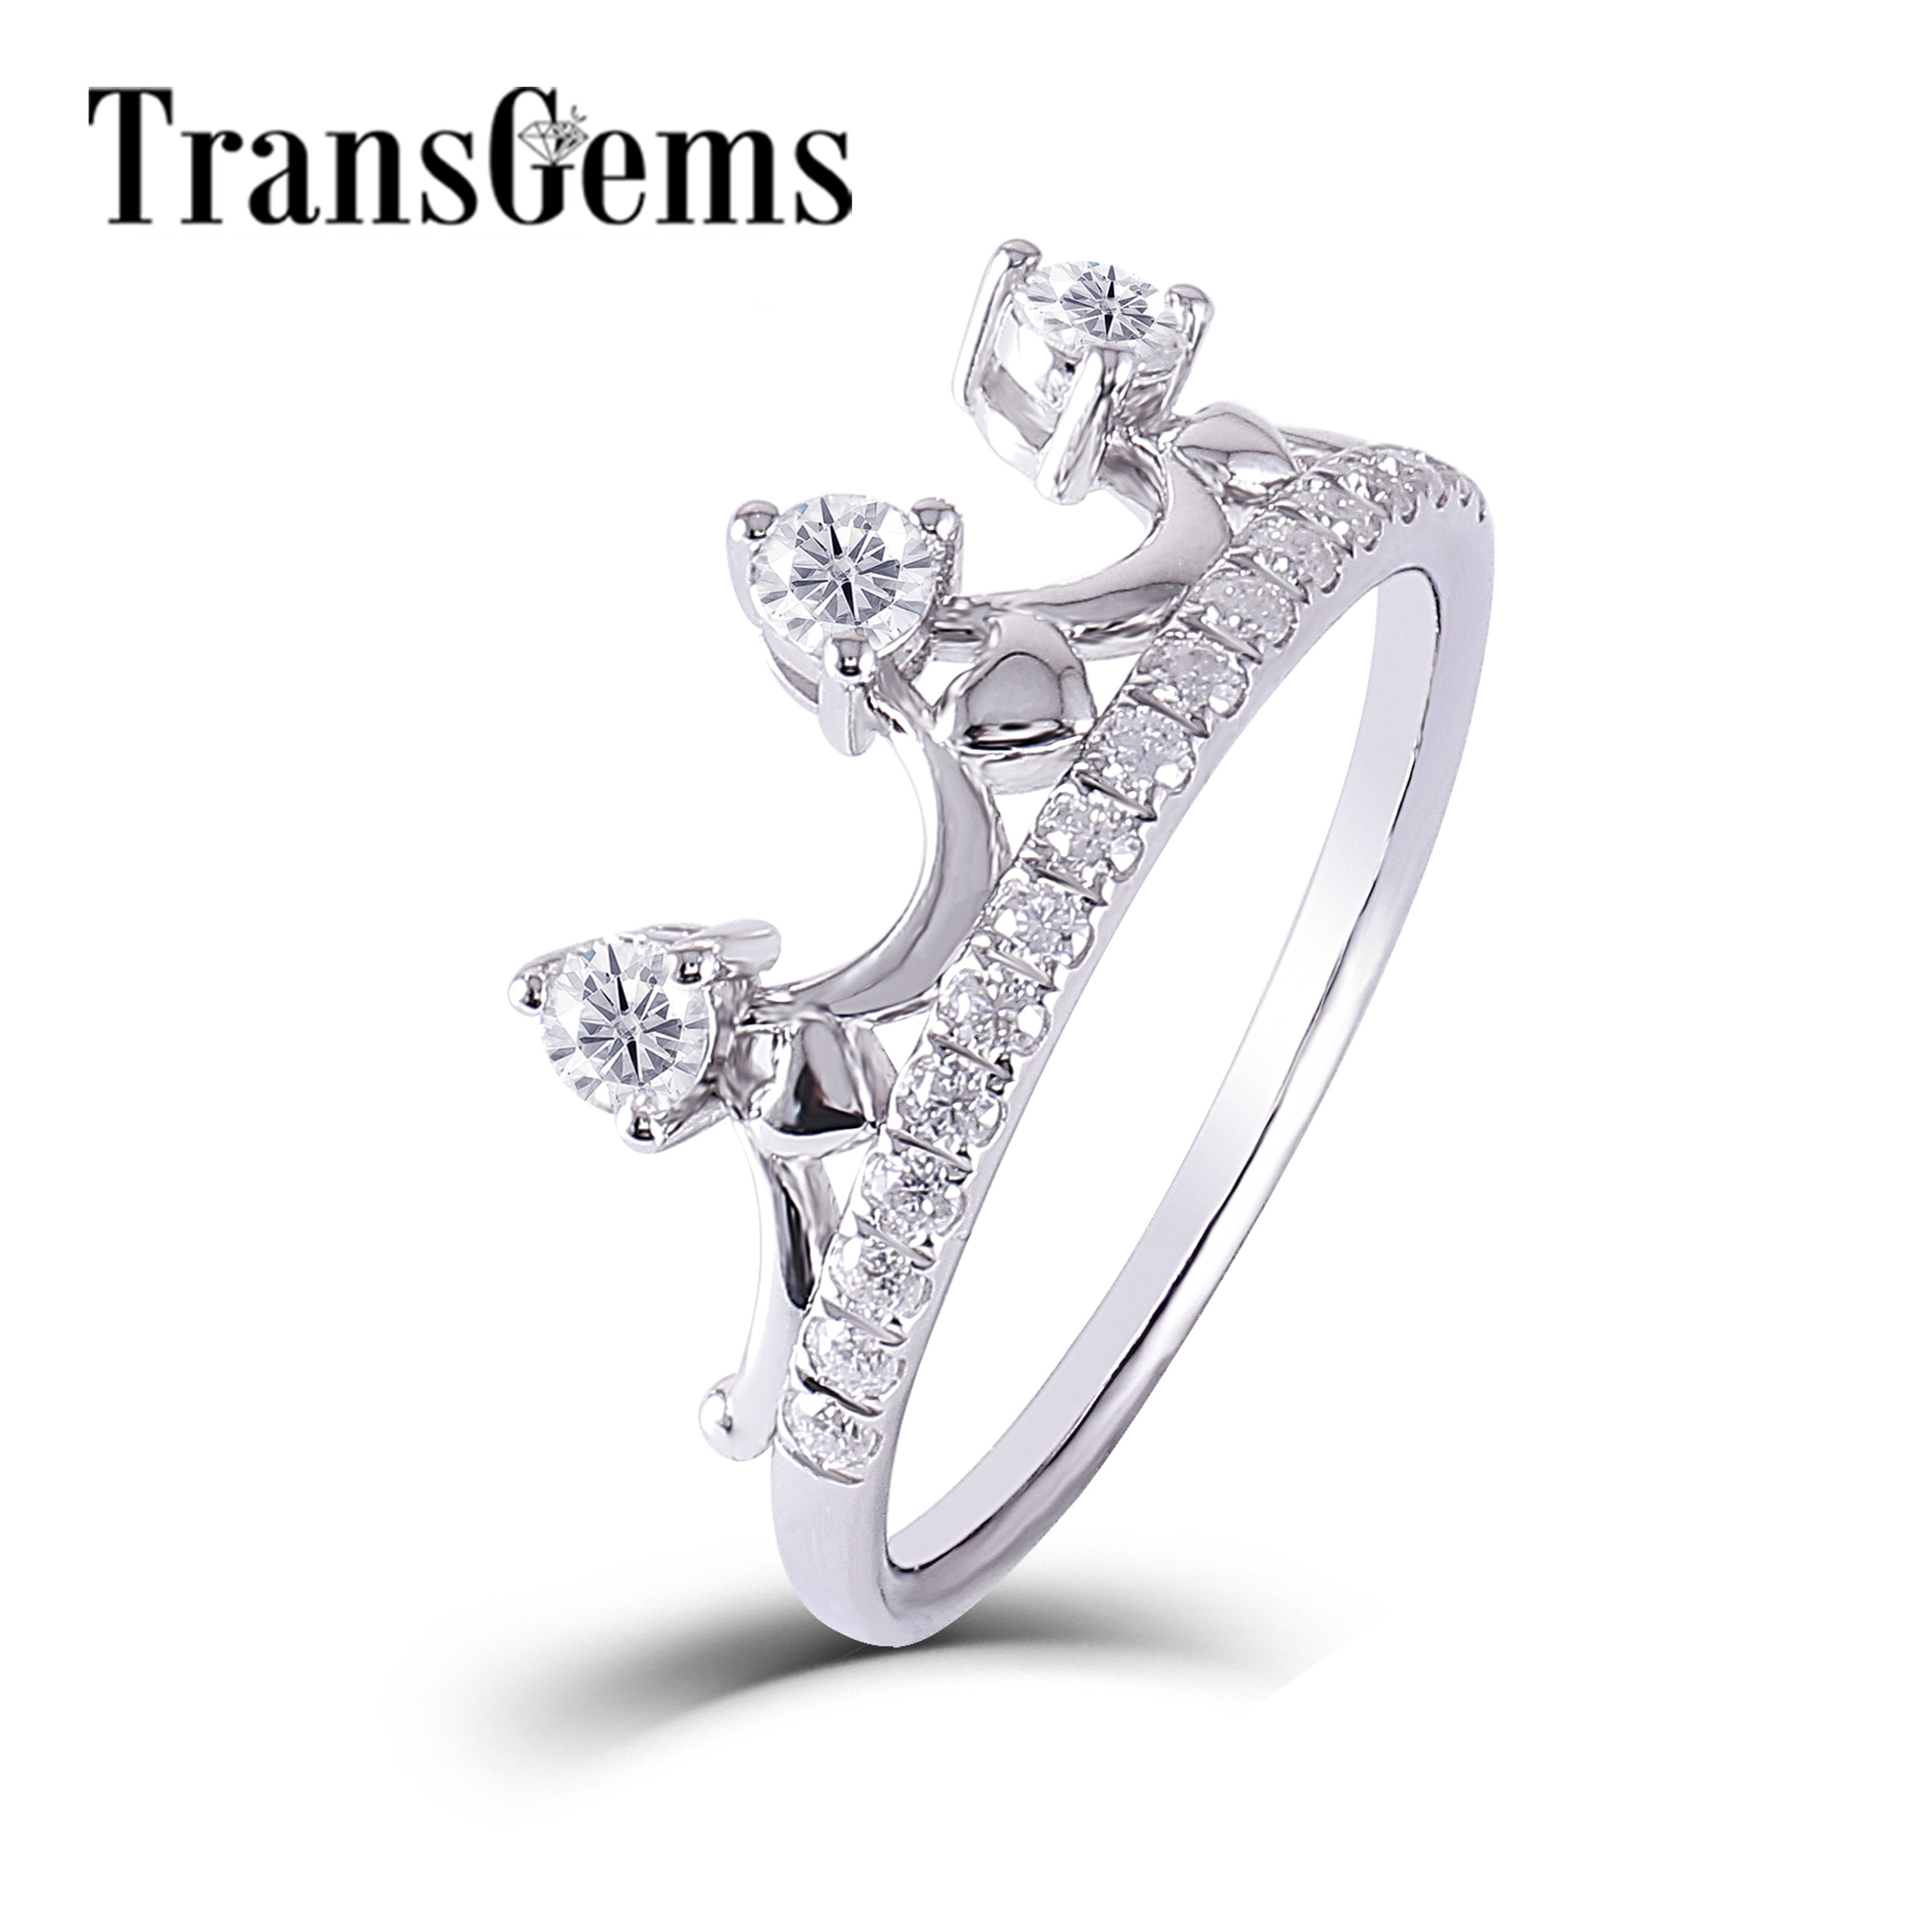 Transgems Solid 14K 585 White Gold F Color Crown Shaped Engagement Ring Wedding Band Anniversary GIfts